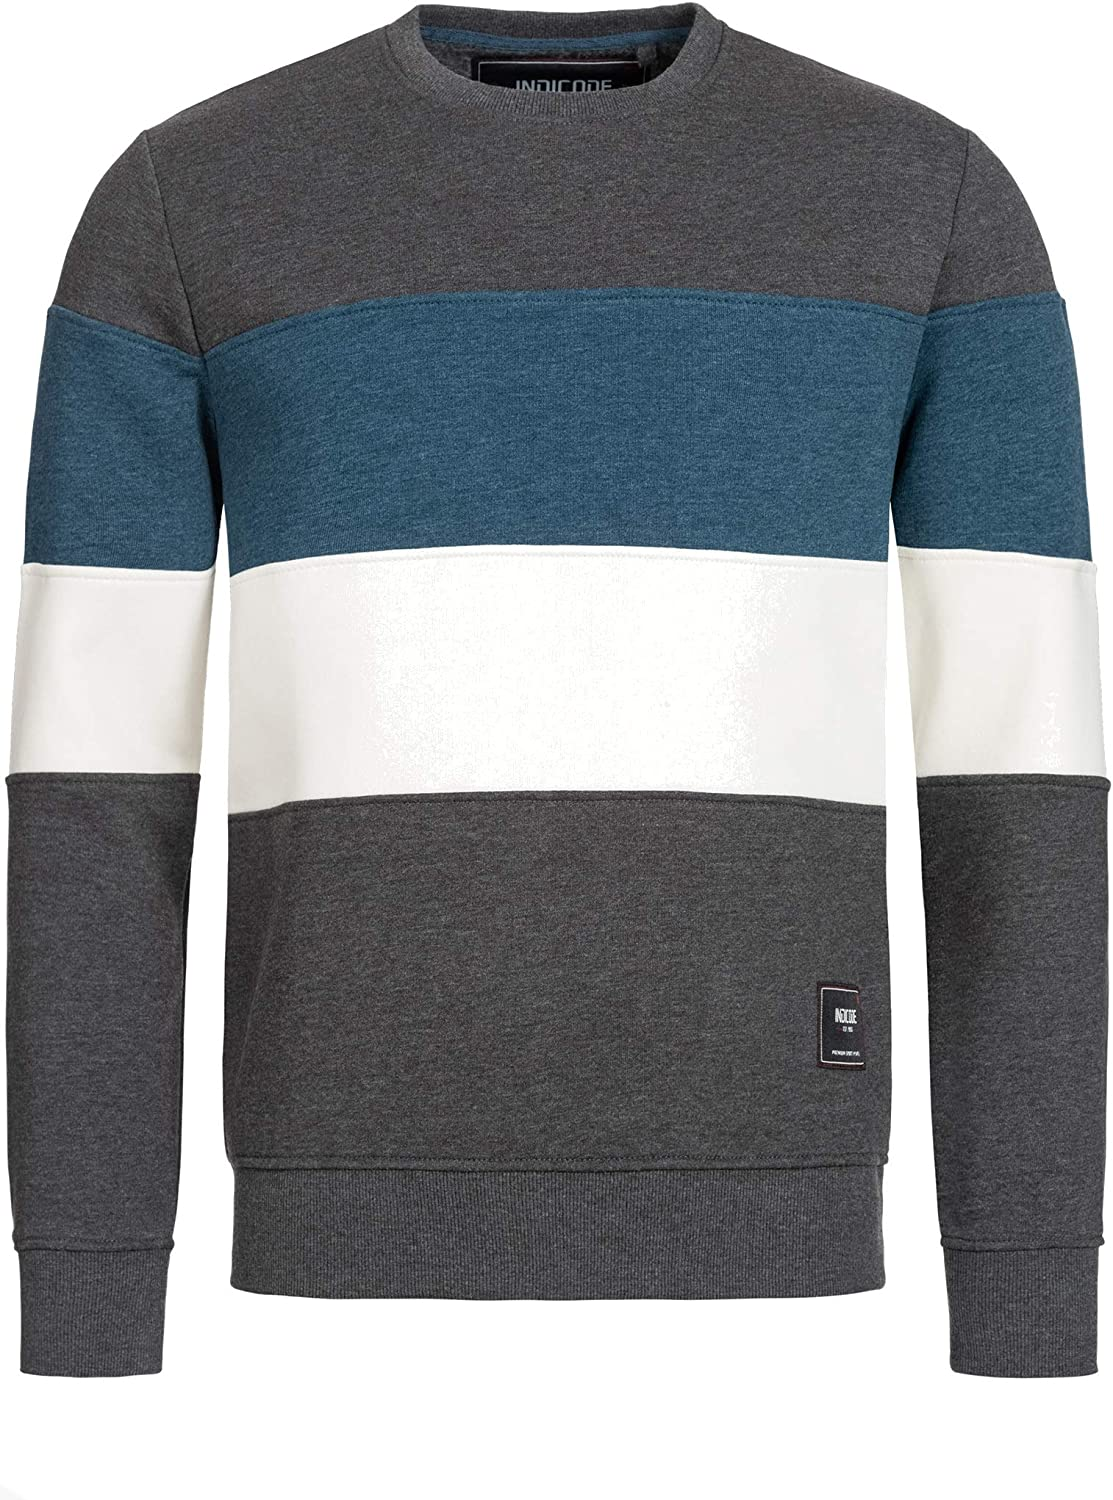 Warm Men/'S Sweater Modern Winter Pullover for Men Indicode Mens Gavel Sweatshirt with Ribbed Cuffs